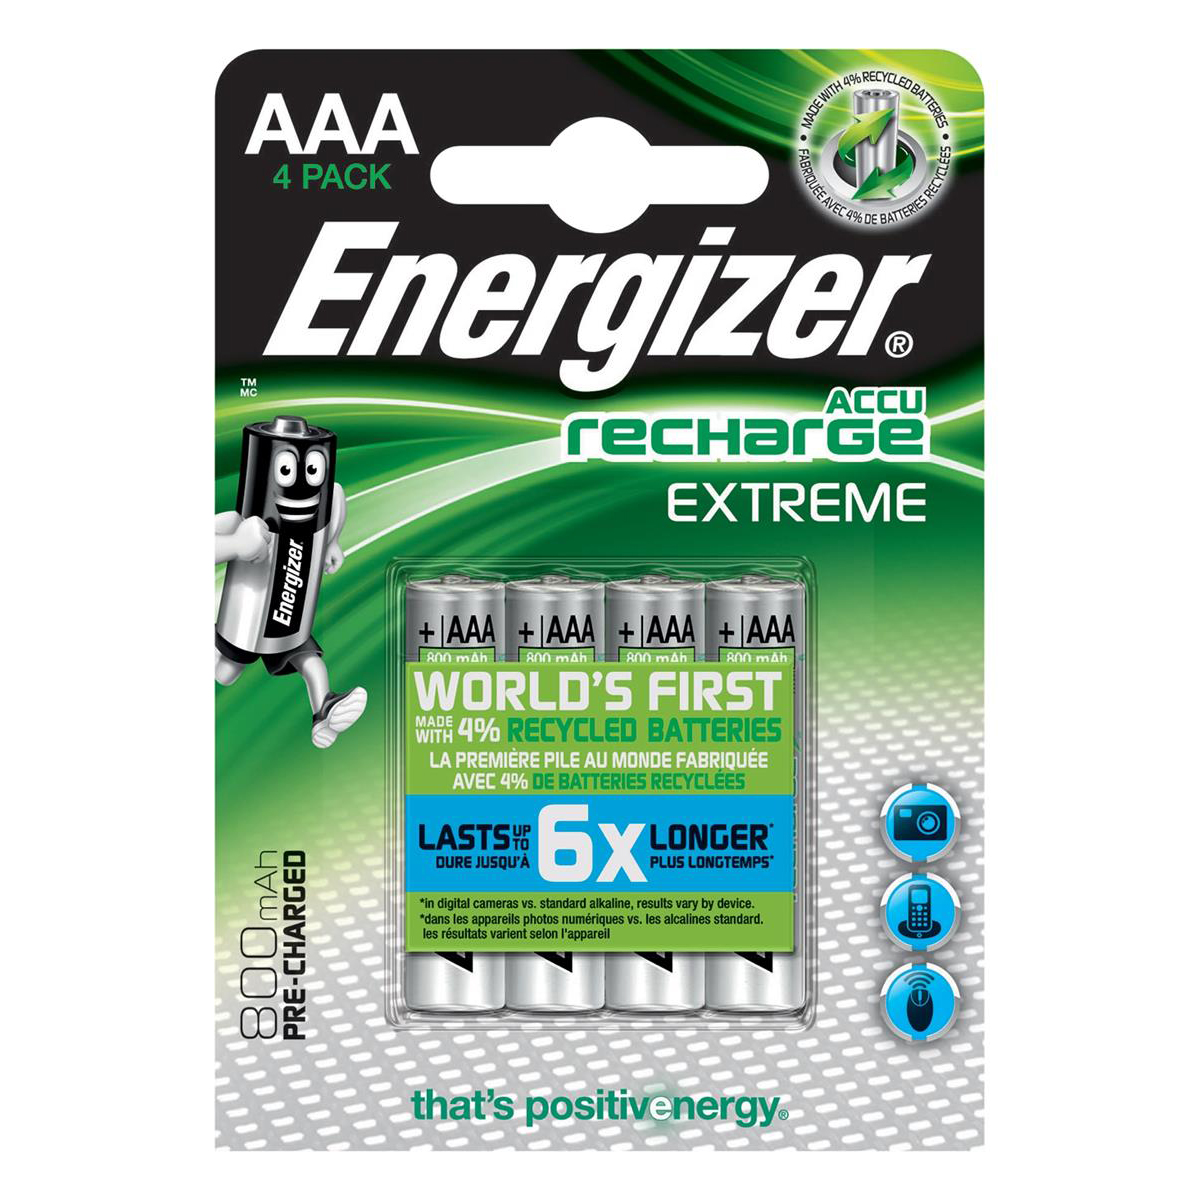 AAA Energizer Battery Rechargeable Advanced NiMH Capacity 700mAh LR03 1.2V AAA Ref E300624400 Pack 4